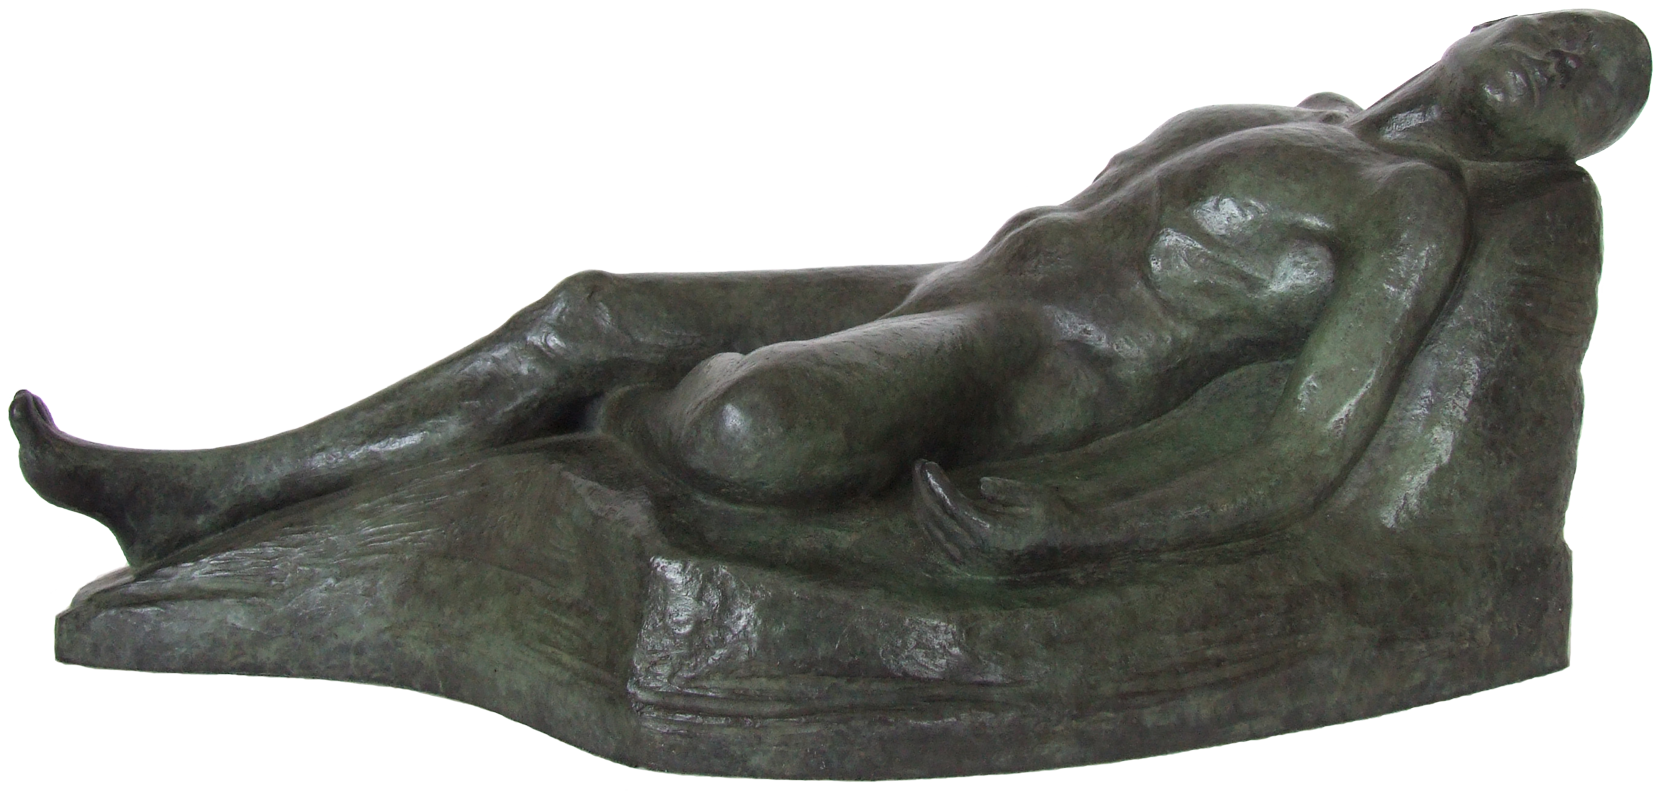 Jean-Jacques - figurative bronze sculpture by Irish artist Marie Smith